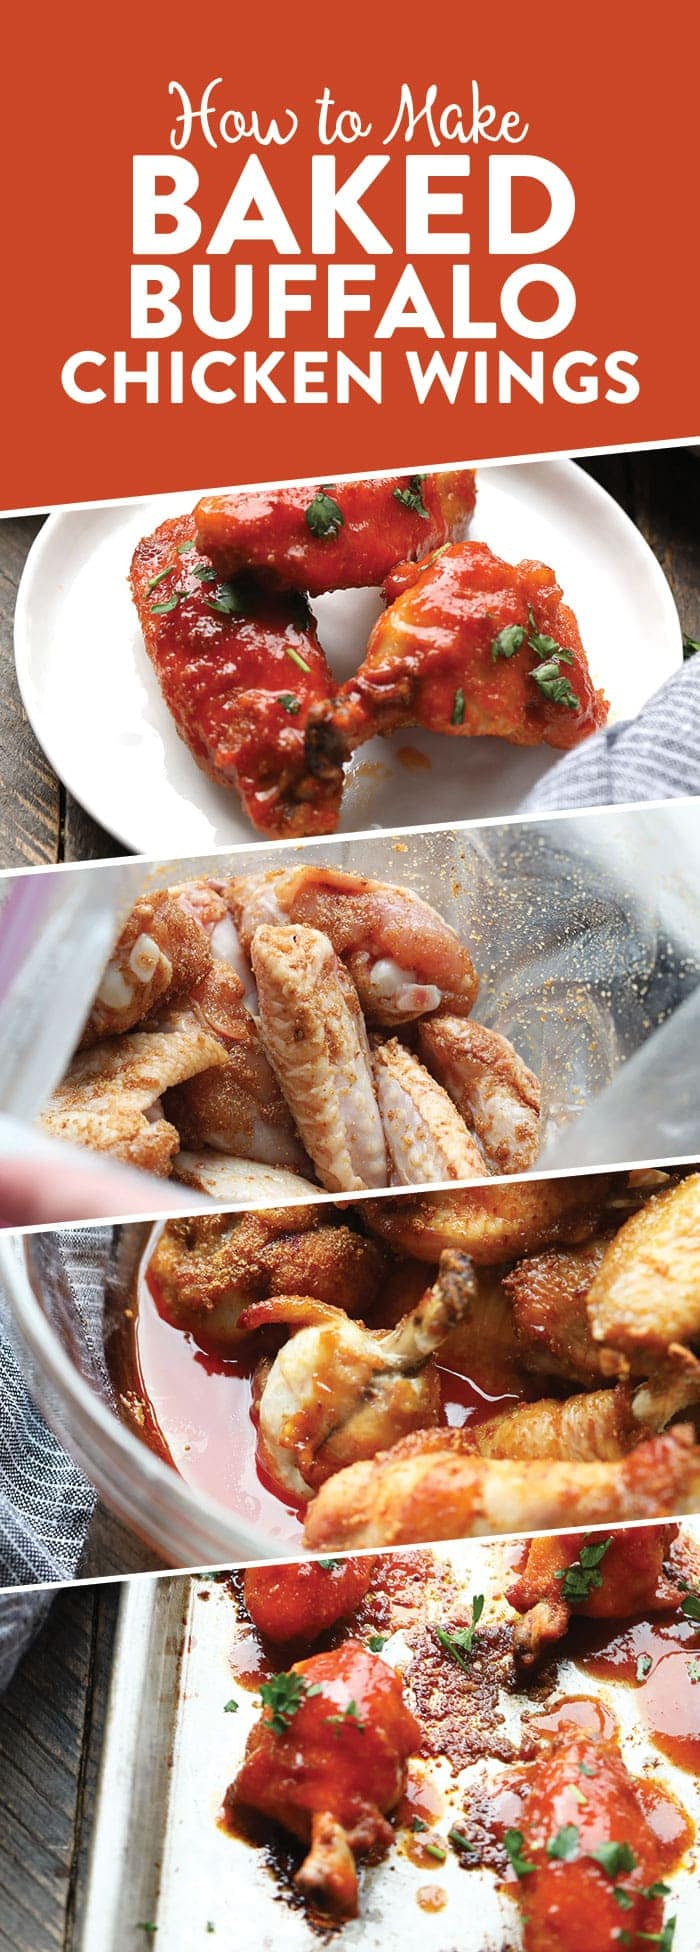 Make any game day or fun family gathering extra tasty with these Healthy Baked Buffalo Chicken Wings. They're rubbed with coconut sugar and garlic and tossed with tasty franks and honey. These wings are the perfect appetizer for any occasion.